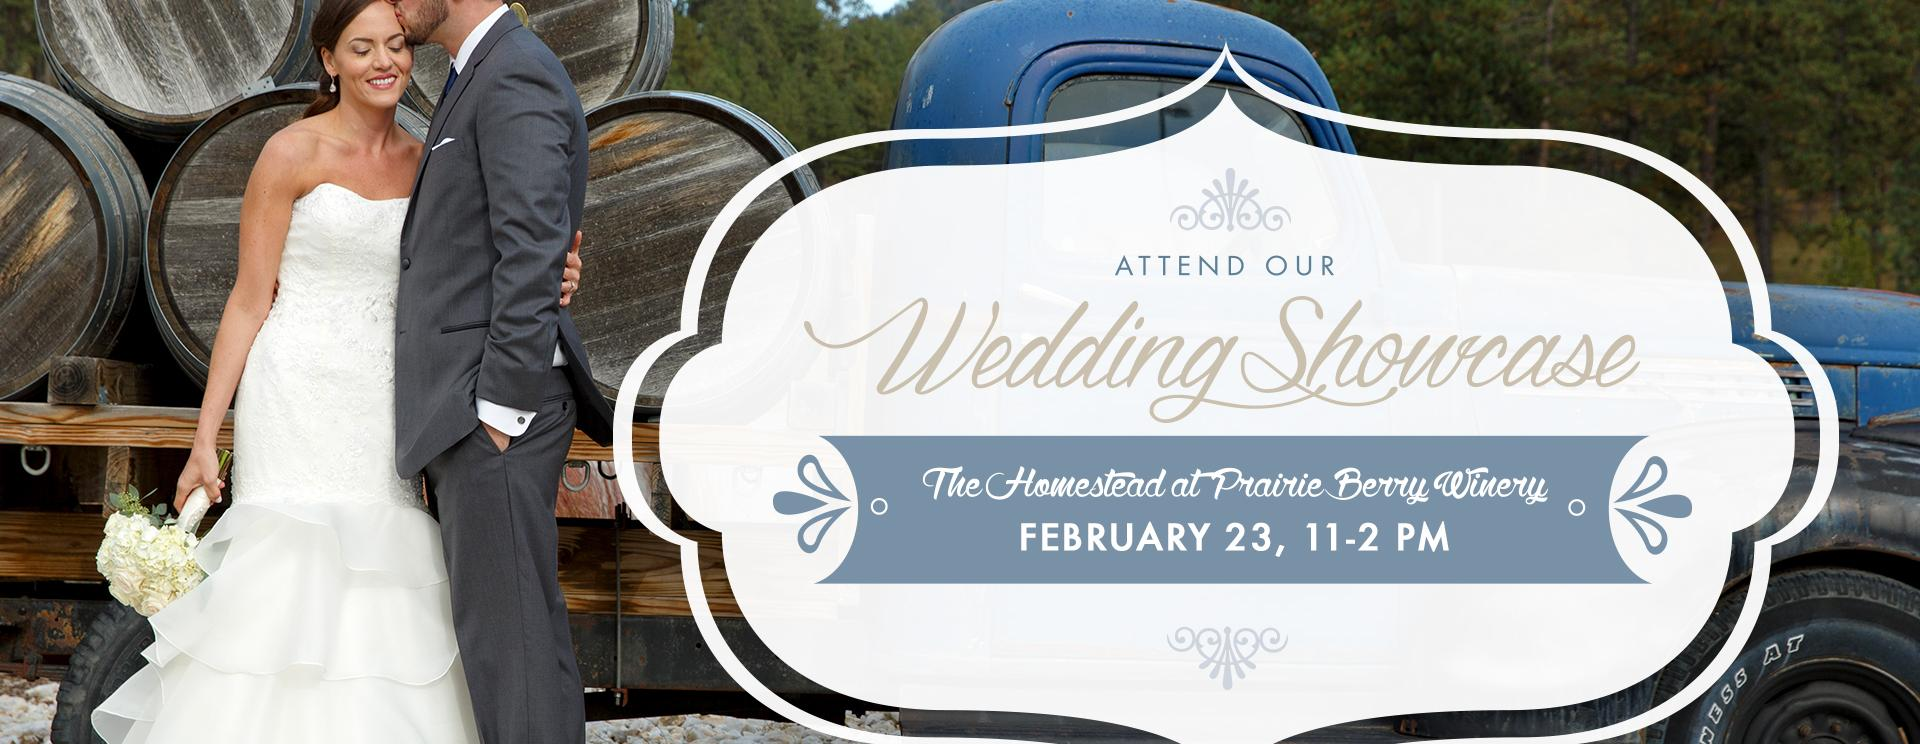 Wedding Showcase at The Homestead at Prairie Berry Winery